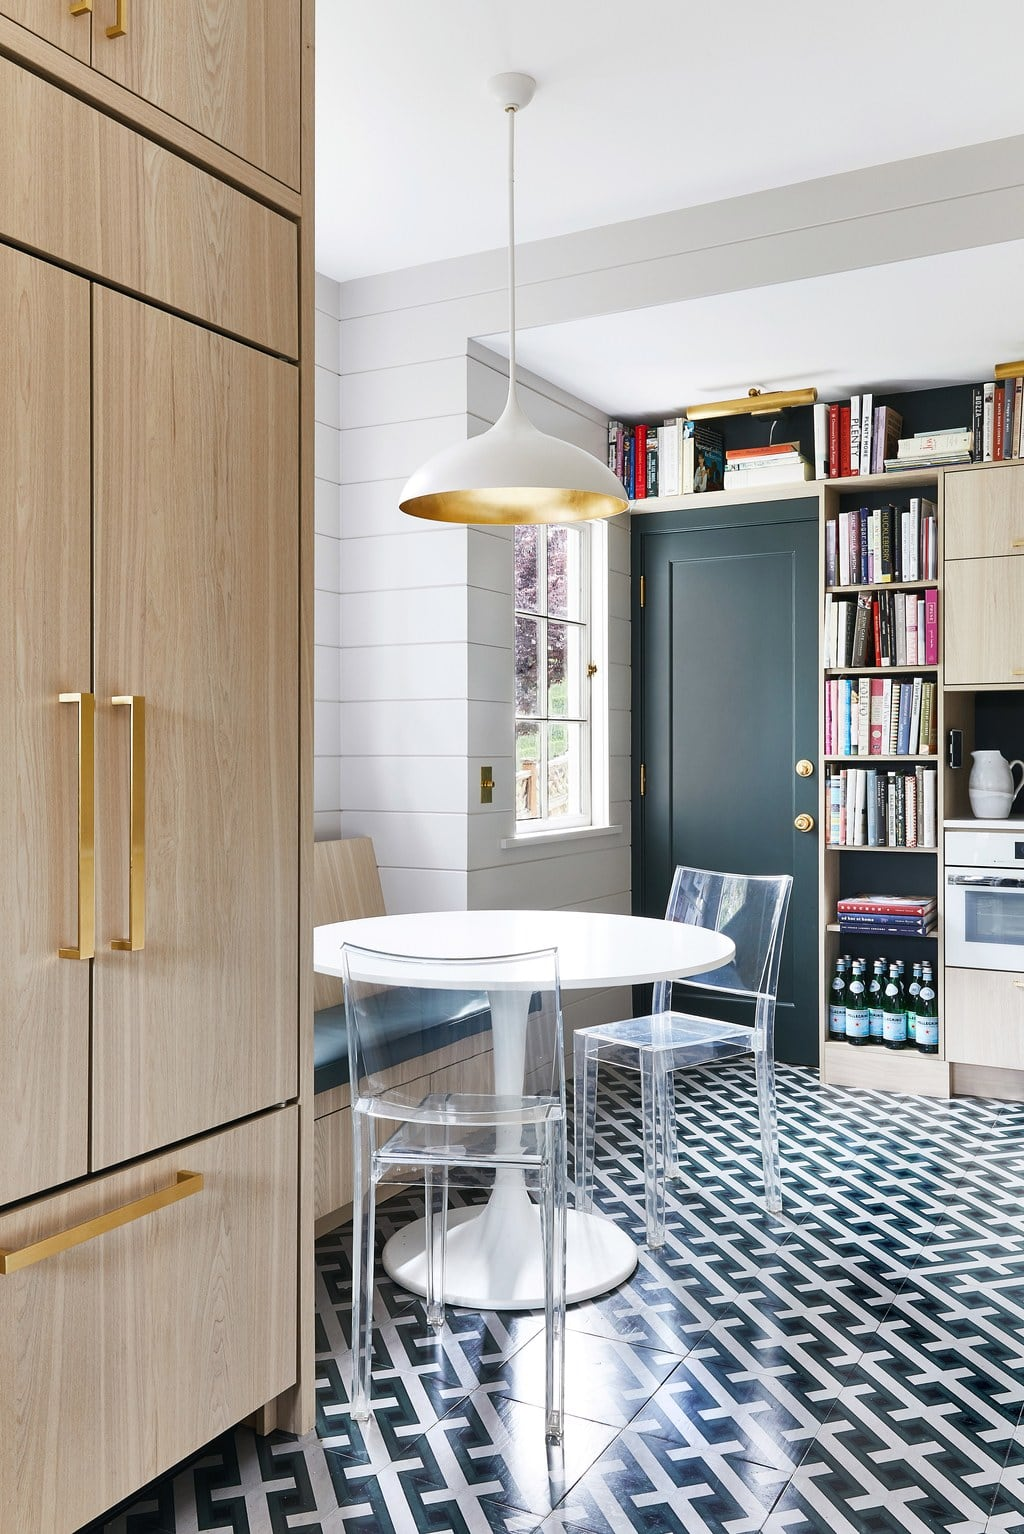 Tulip Dining Tables: Style Ideas and Where to Get the Best ...